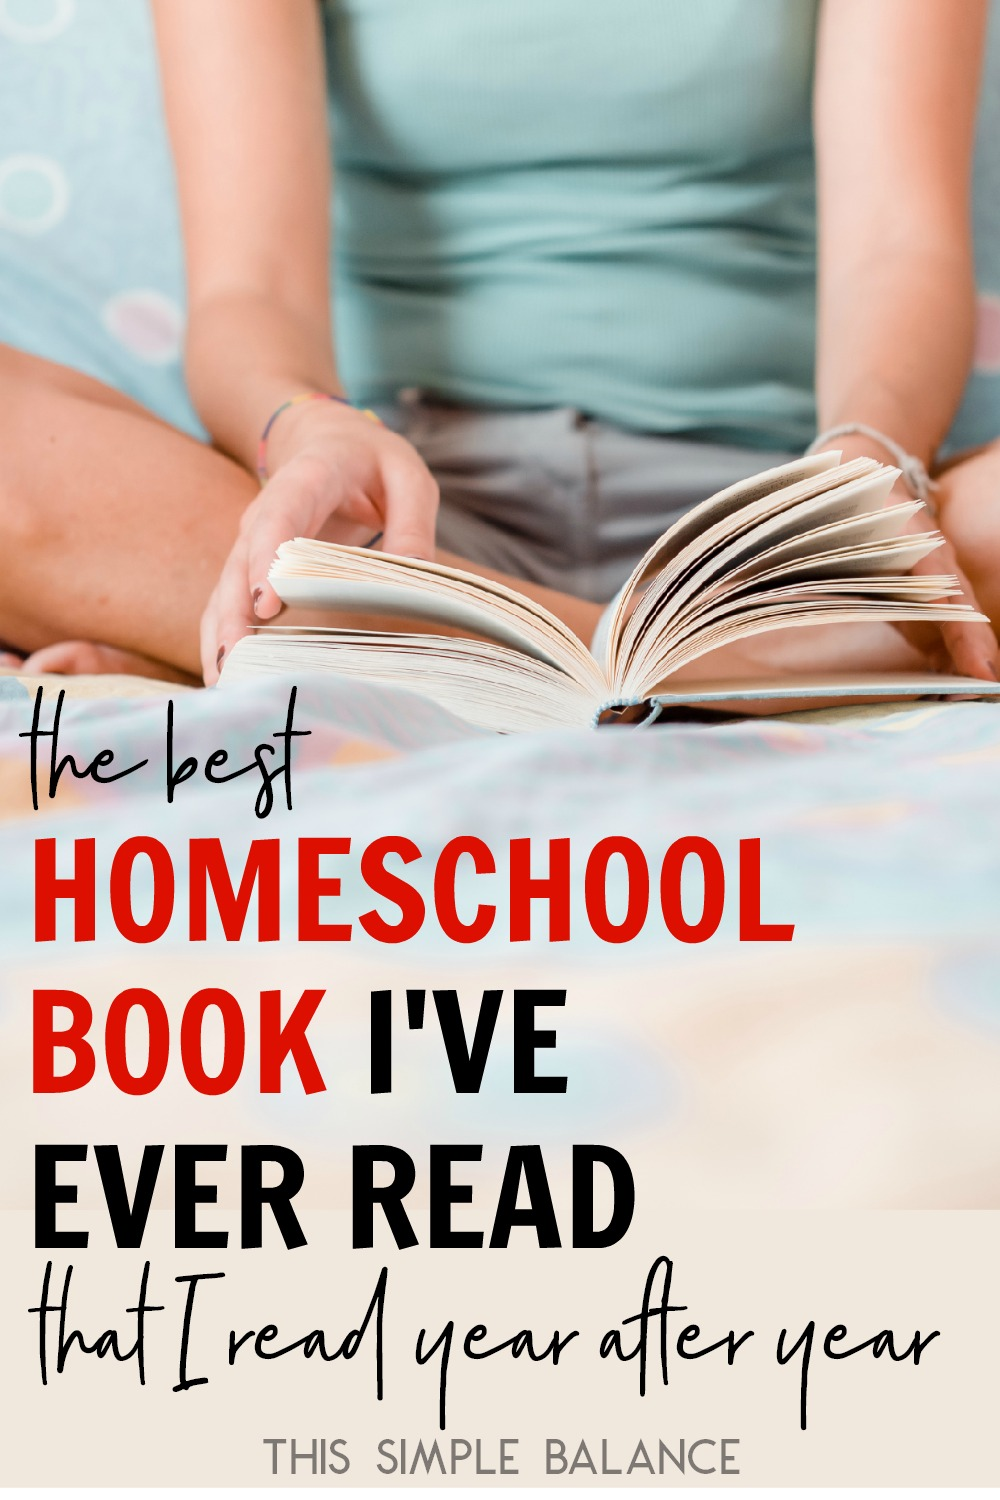 Looking for a good homeschool book? This one keeps me homeschooling year after year after year. It's seriously the best homeschool book I've ever read (and I've read my share).